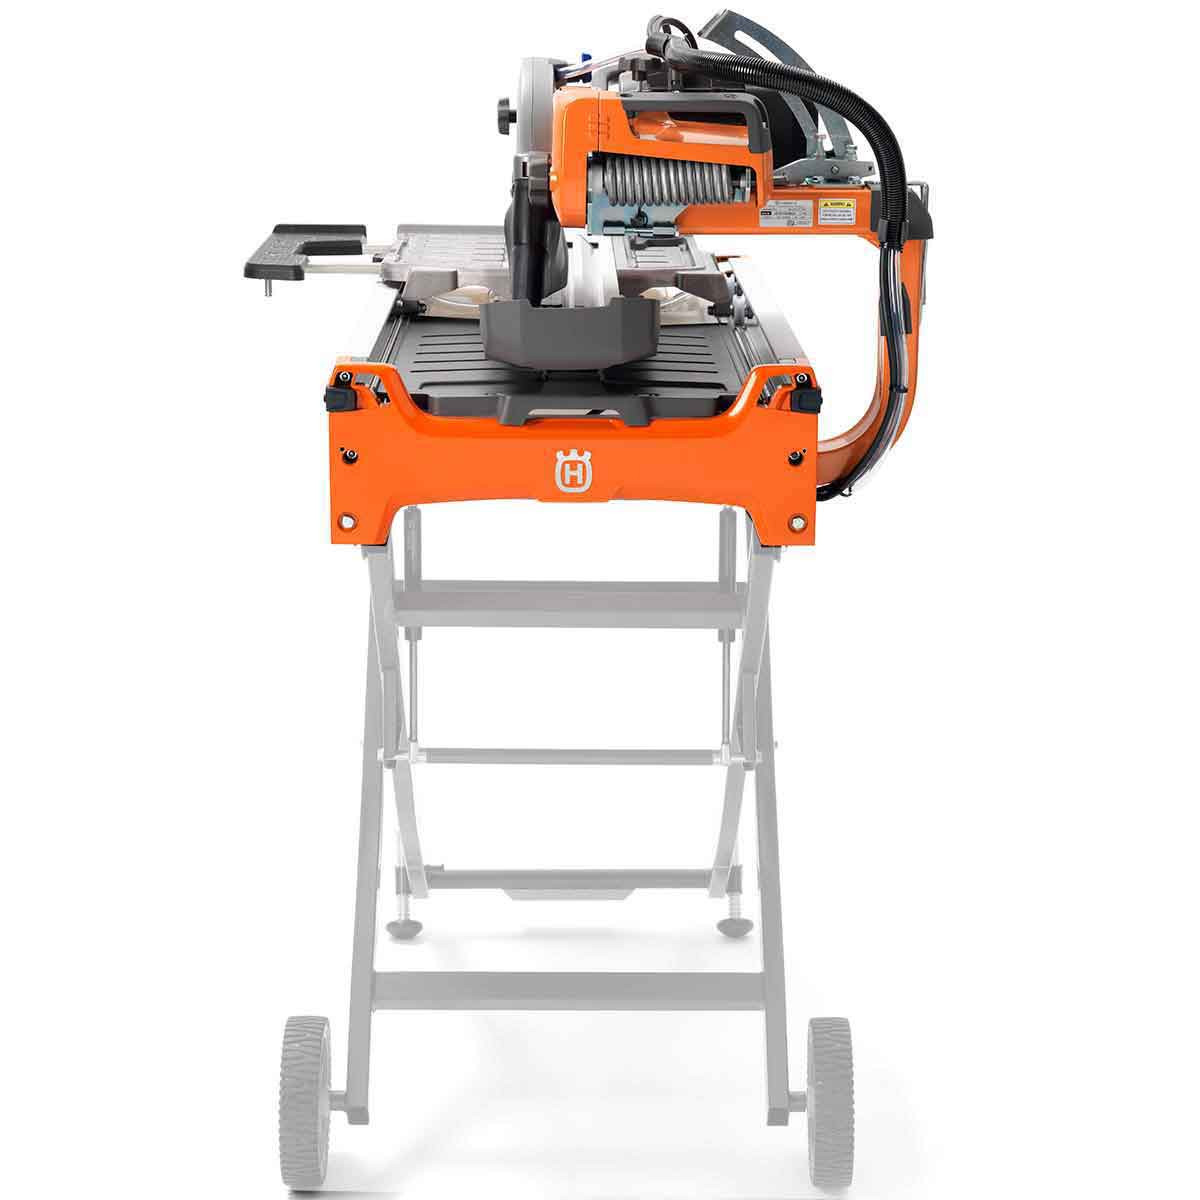 Husqvarna TS 70 Tile Saw rear view